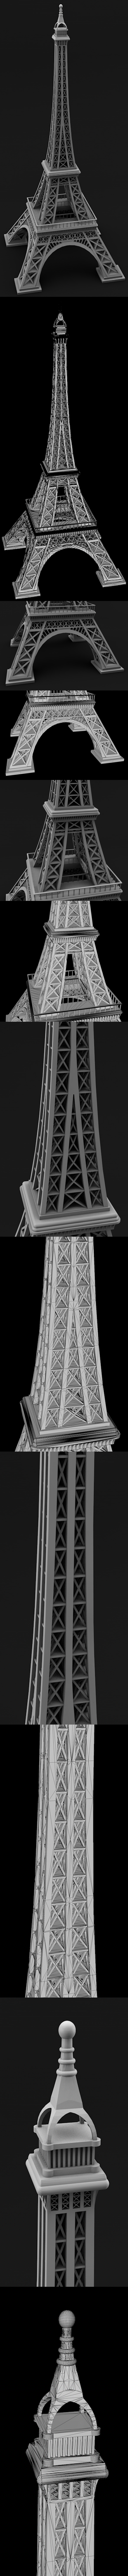 3DOcean Eiffel tower model Full details 20953382